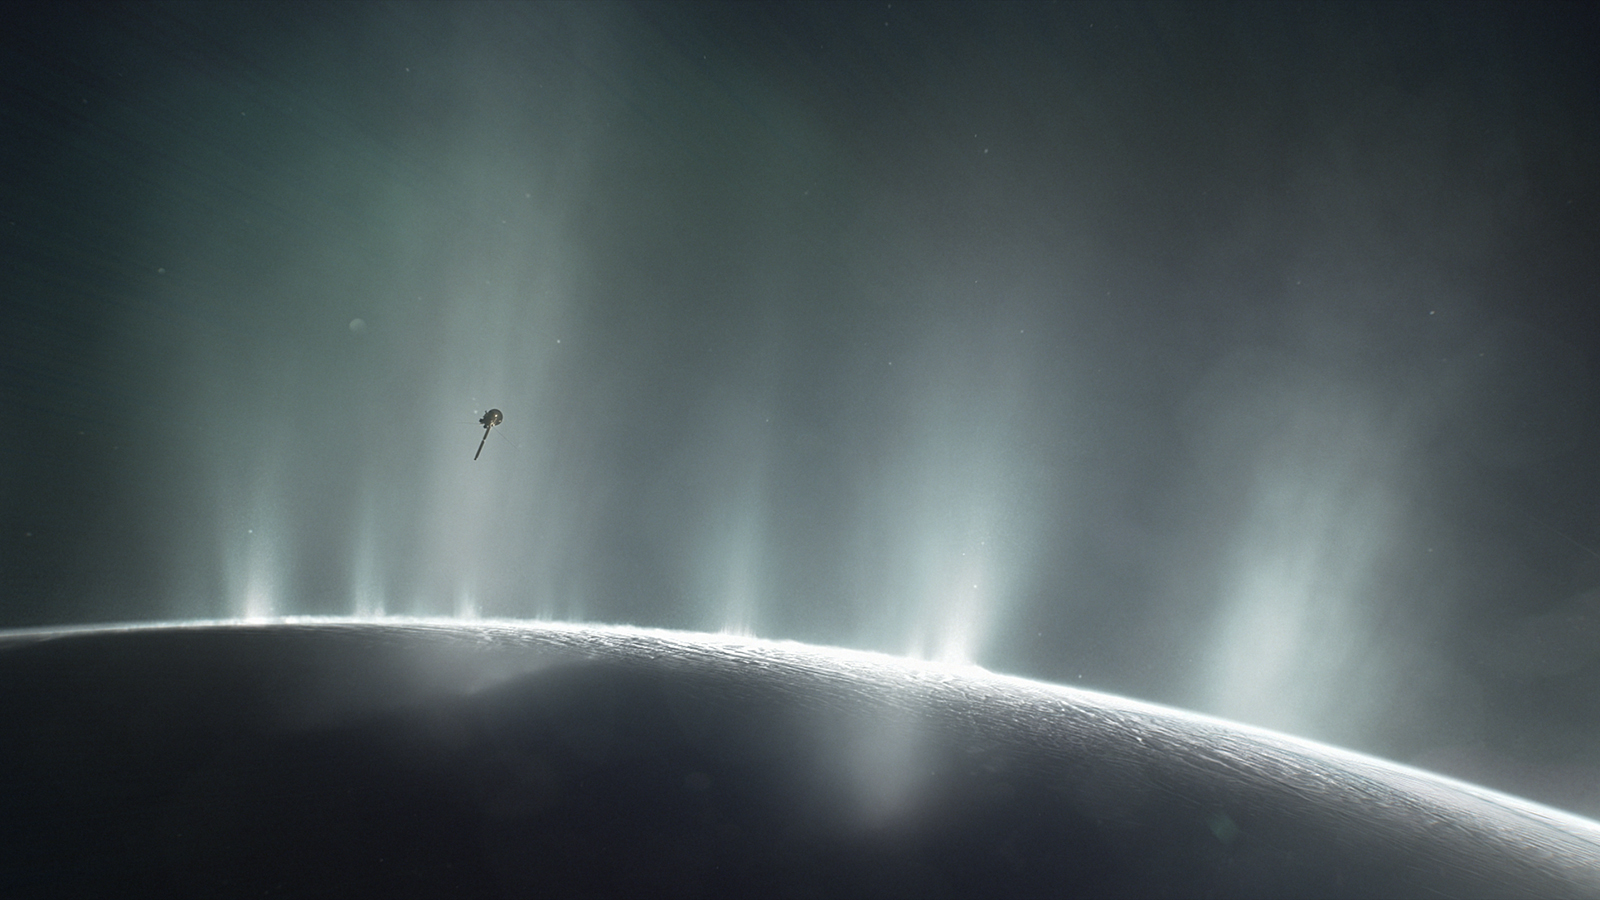 Illustration showing tiny spacecraft in Enceladus plume.